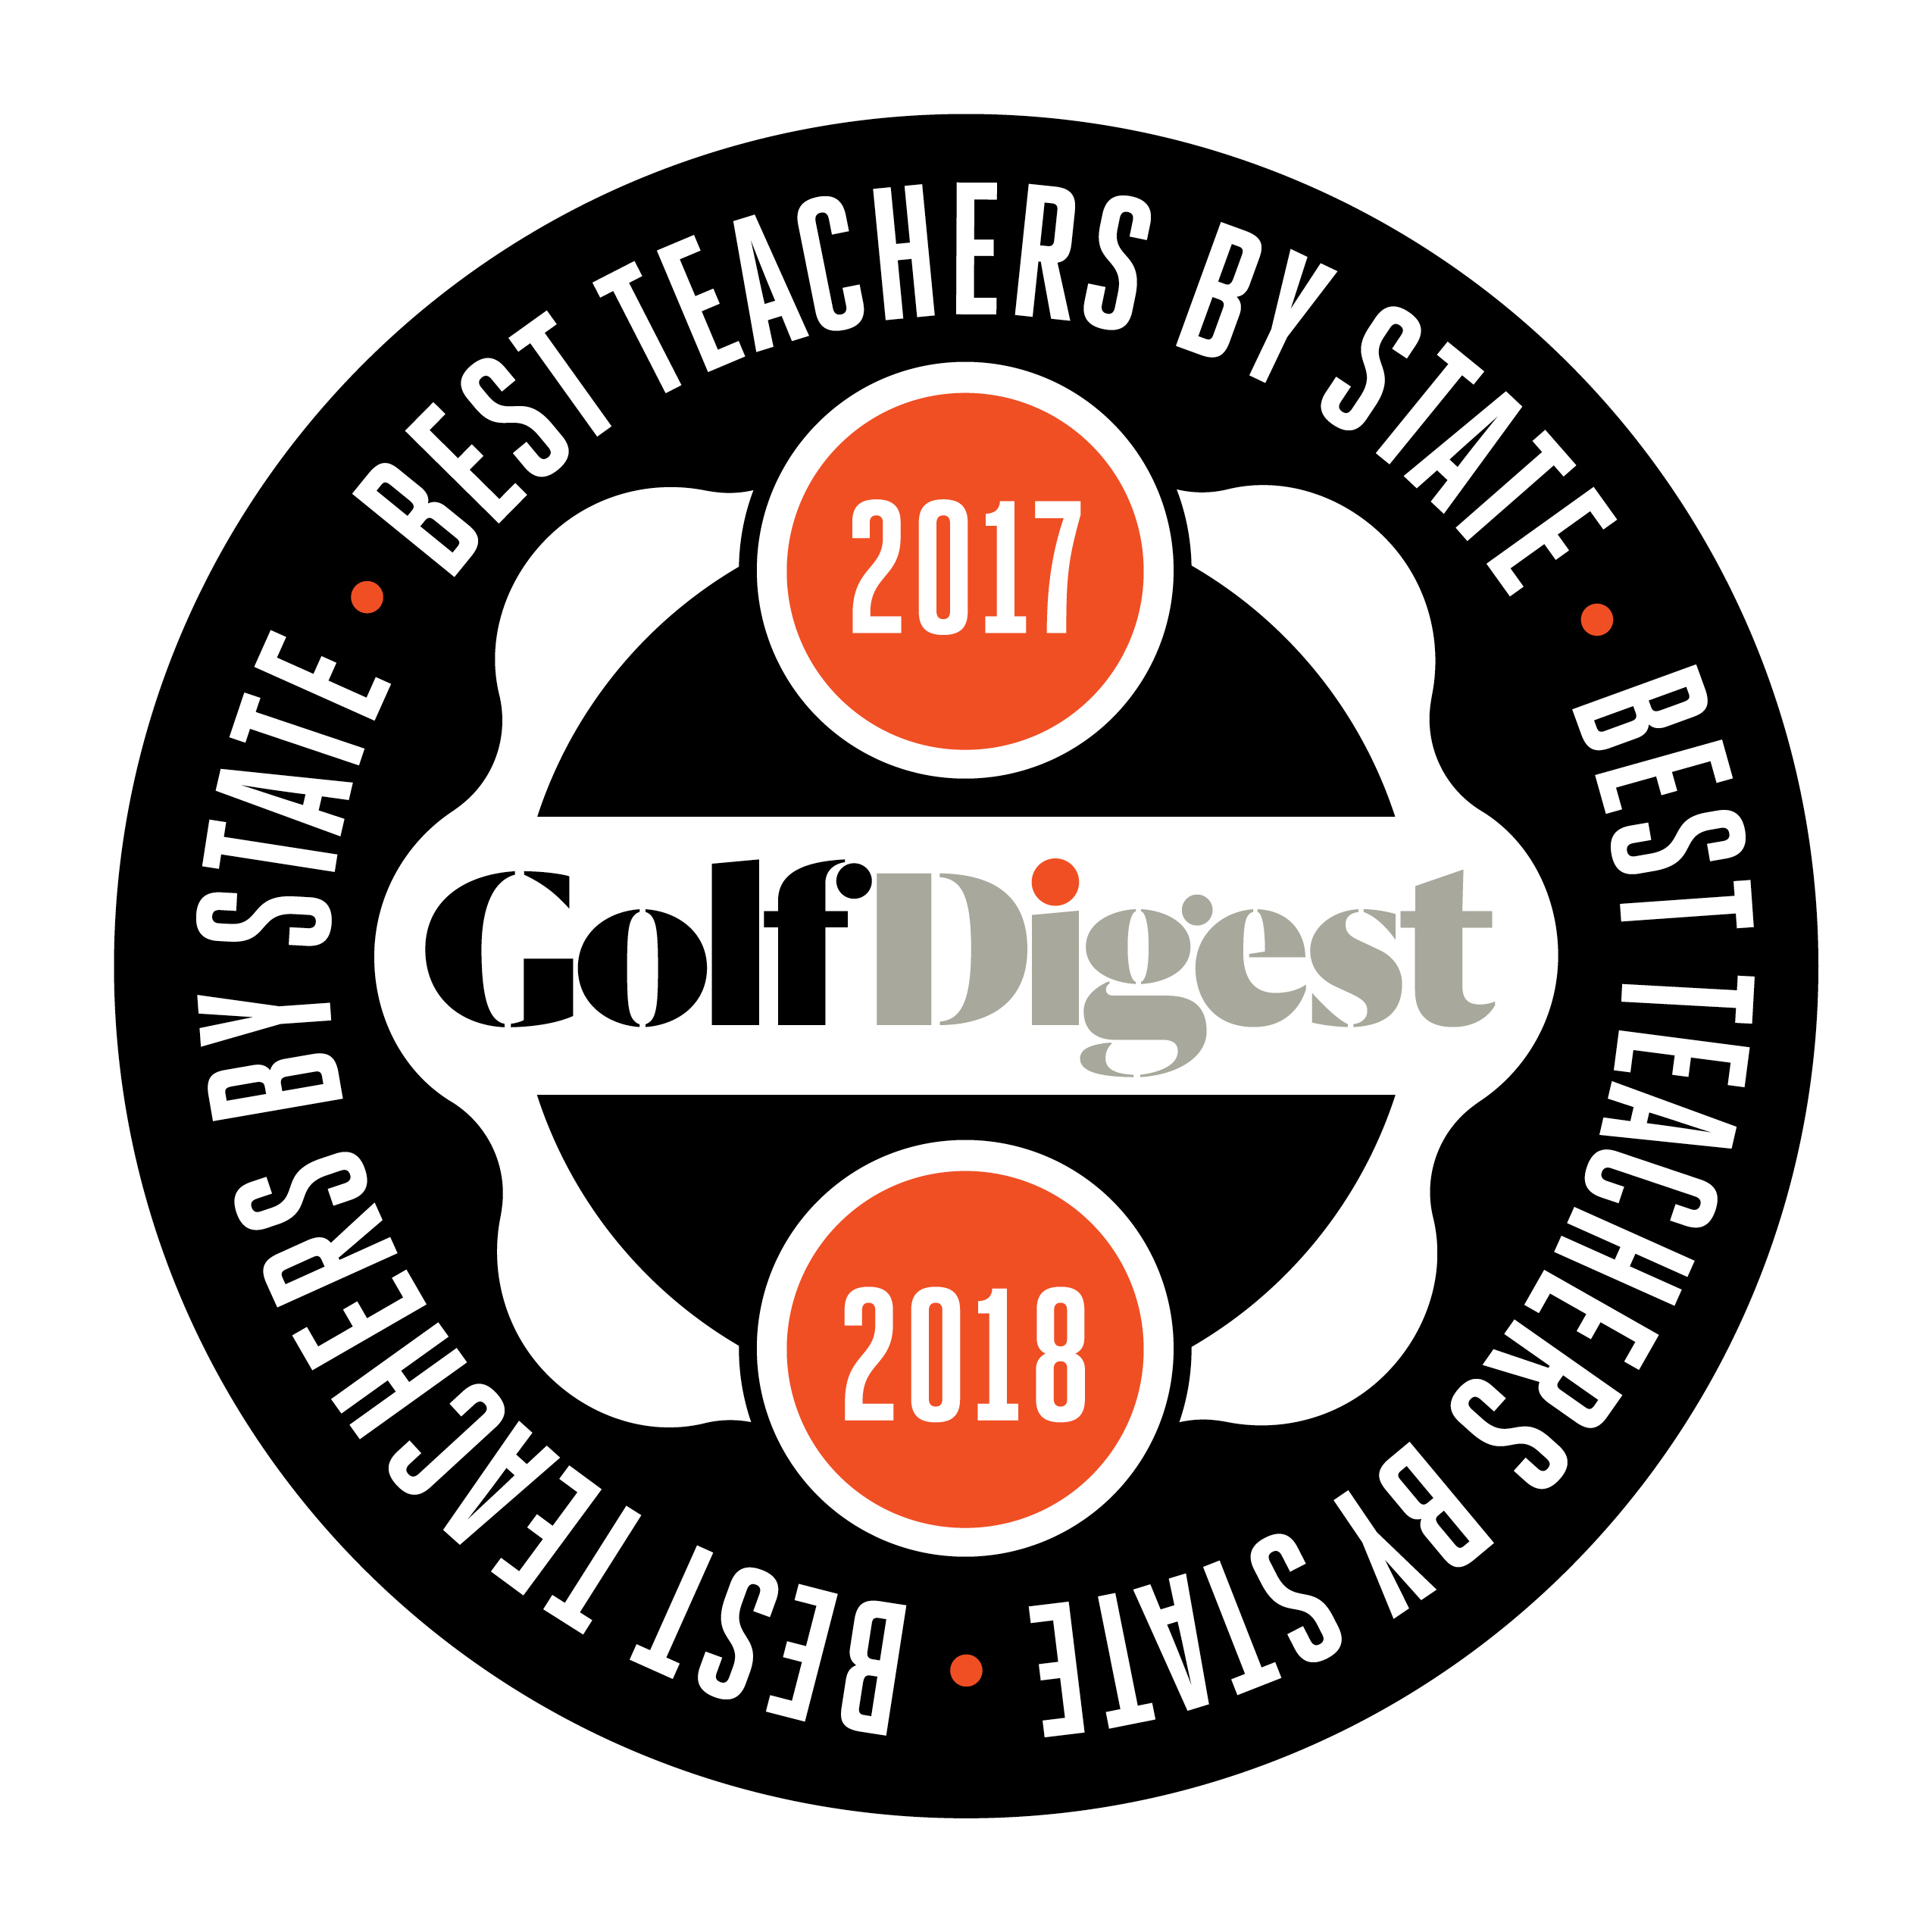 Fay Named To Golf Digest Best Teachers By State List